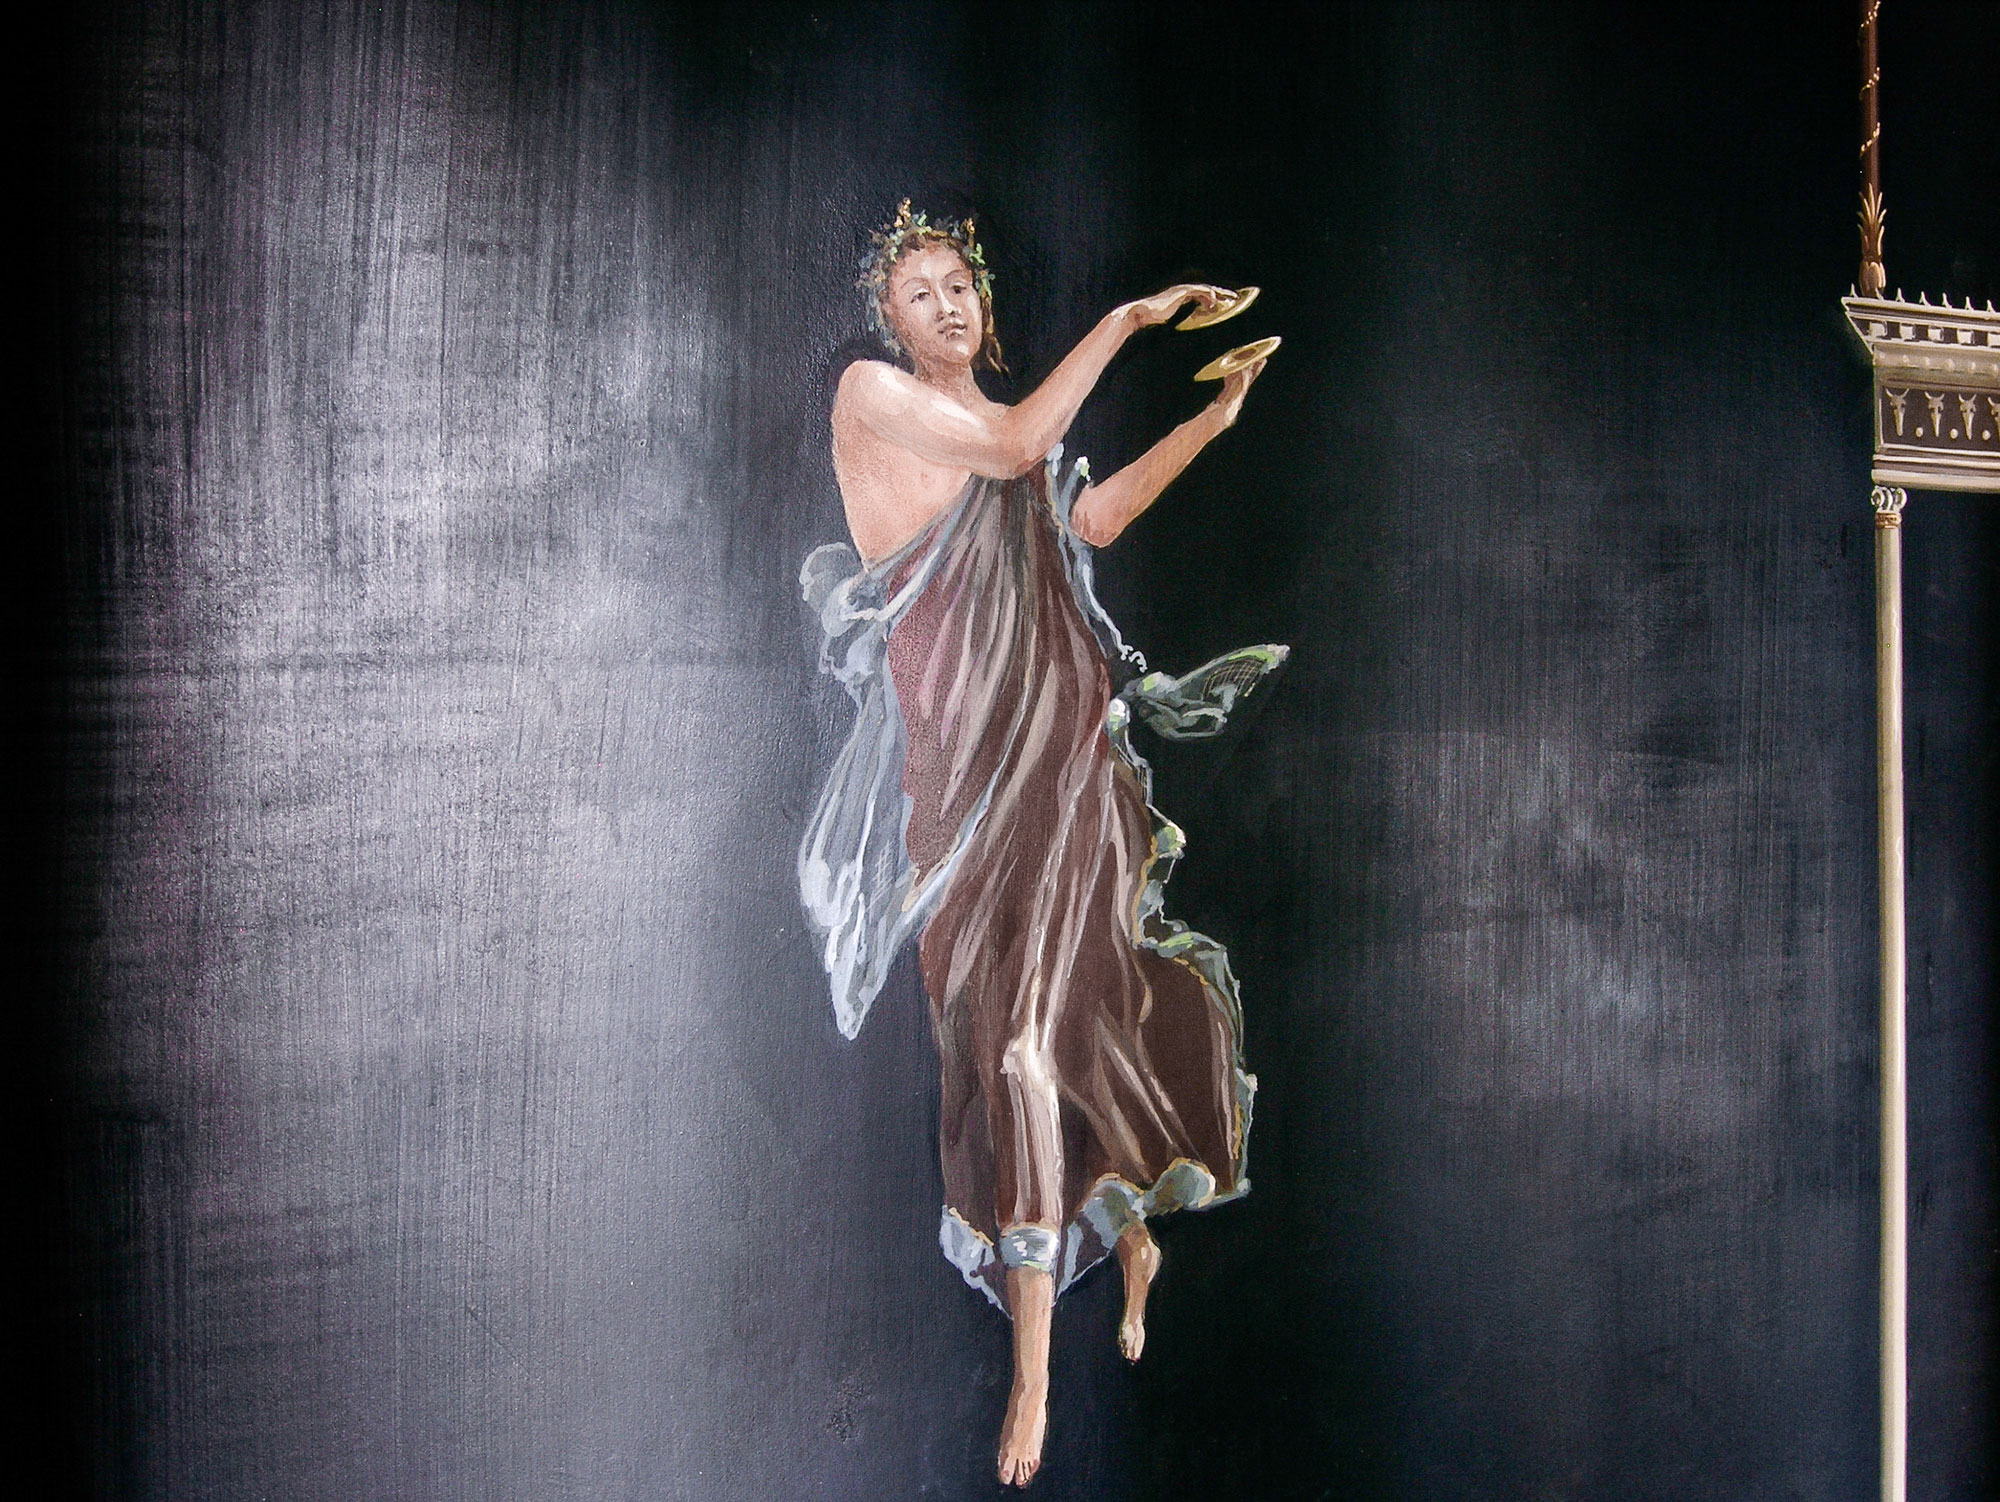 Pompeian dancing girl - Alexander Hamilton - Decorative Painter - London